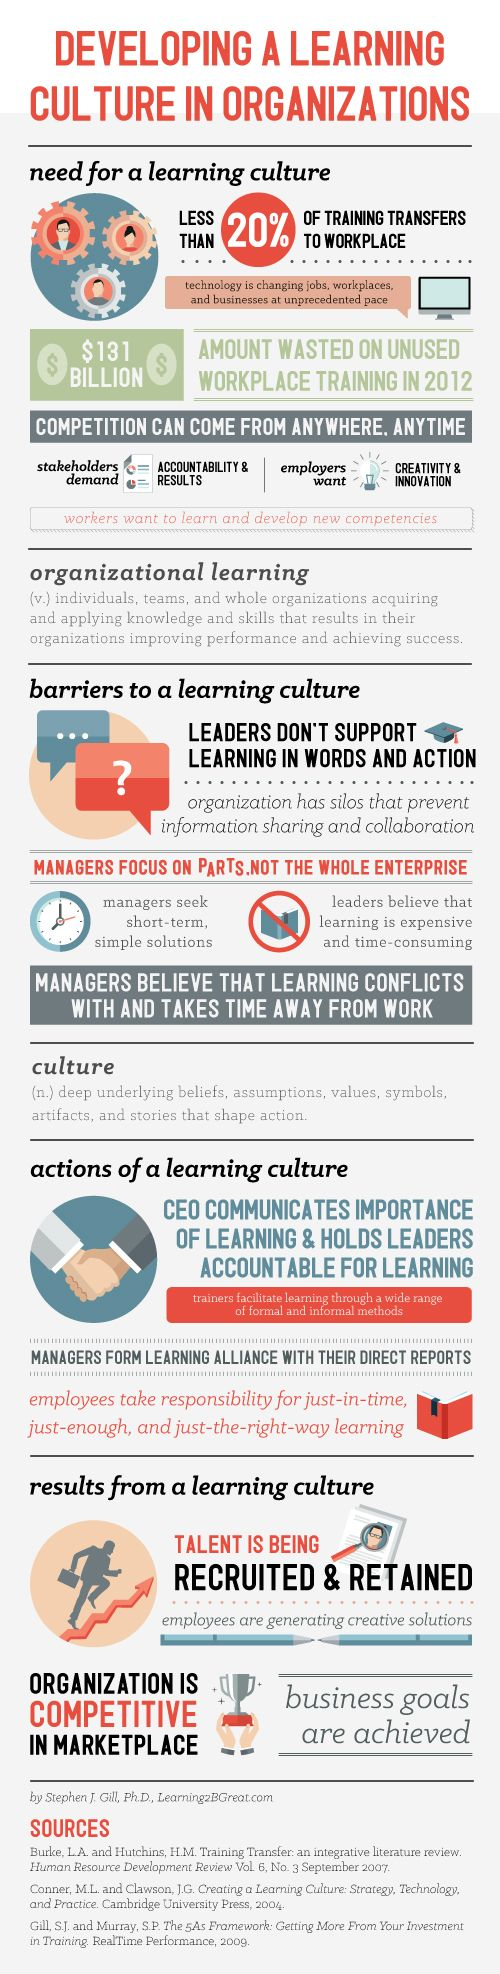 « Learning Culture: A Workplace Environment for Success (Part One) | Main Posted at 10:02 AM in Leadership, Learning Culture, Management, Organization Culture, Organizational Learning, Training, Training Impact| Permalink Please enable JavaScript if you would like to comment on this blog.